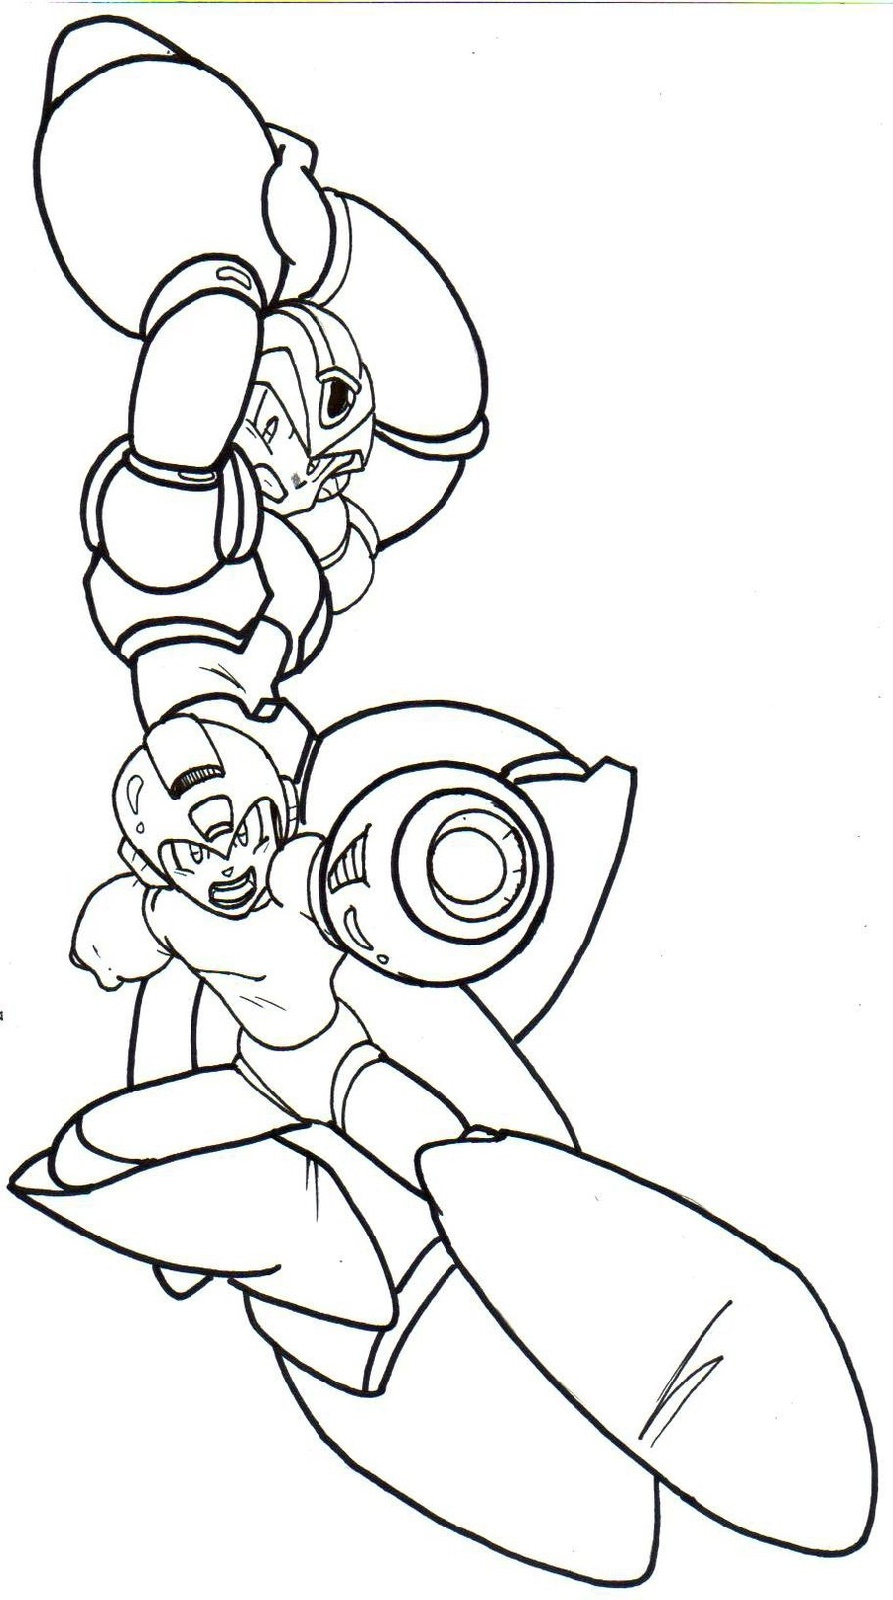 Mega Man Coloring Pages To Print